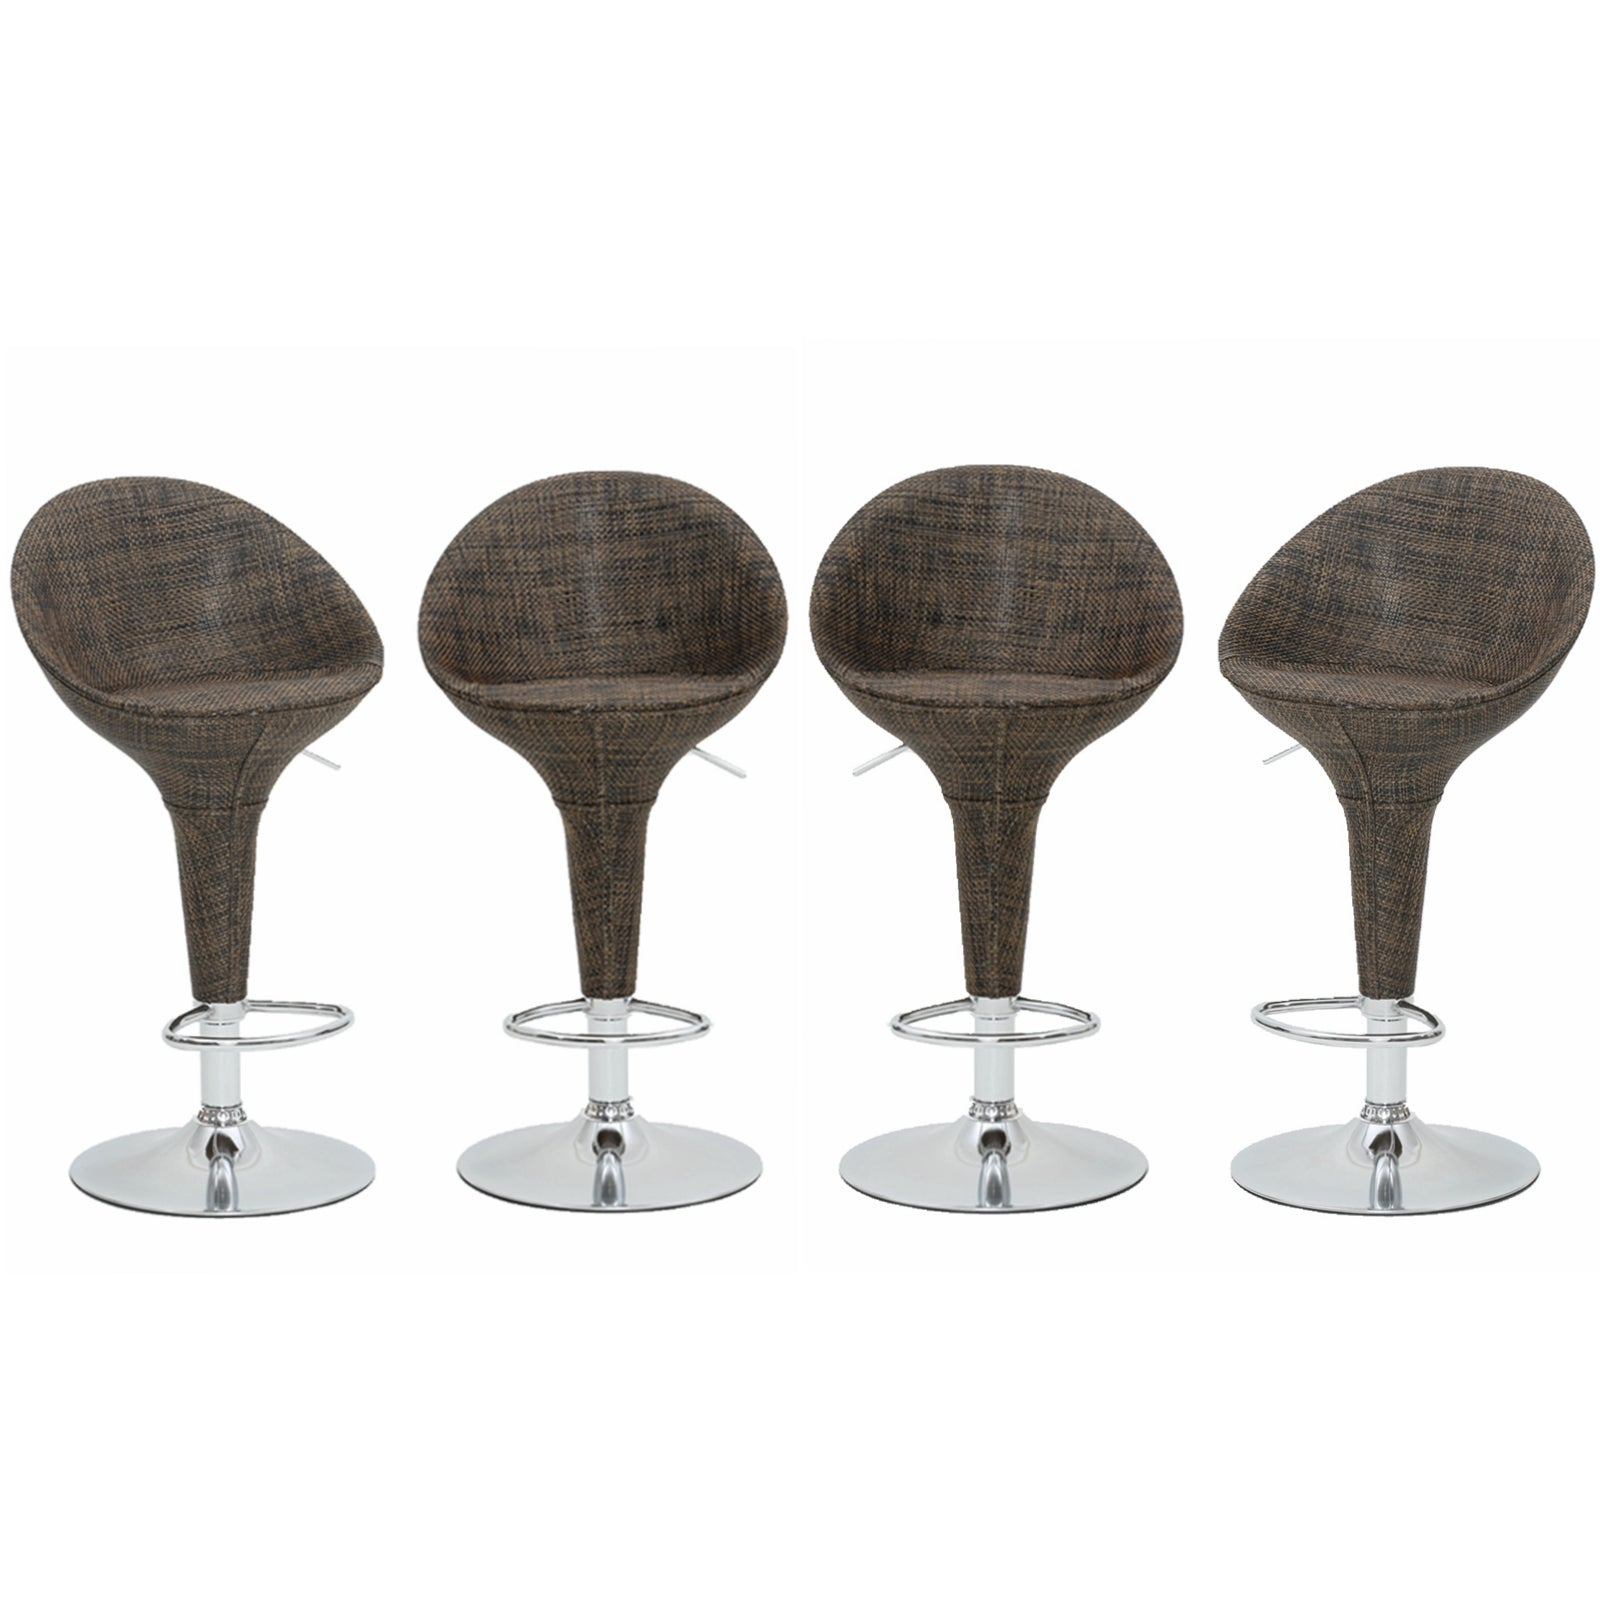 4pc Rattan Wicker Modern Adjustable Pub Swivel Kitchen Stools Bar Stools with Backs Counter Stools